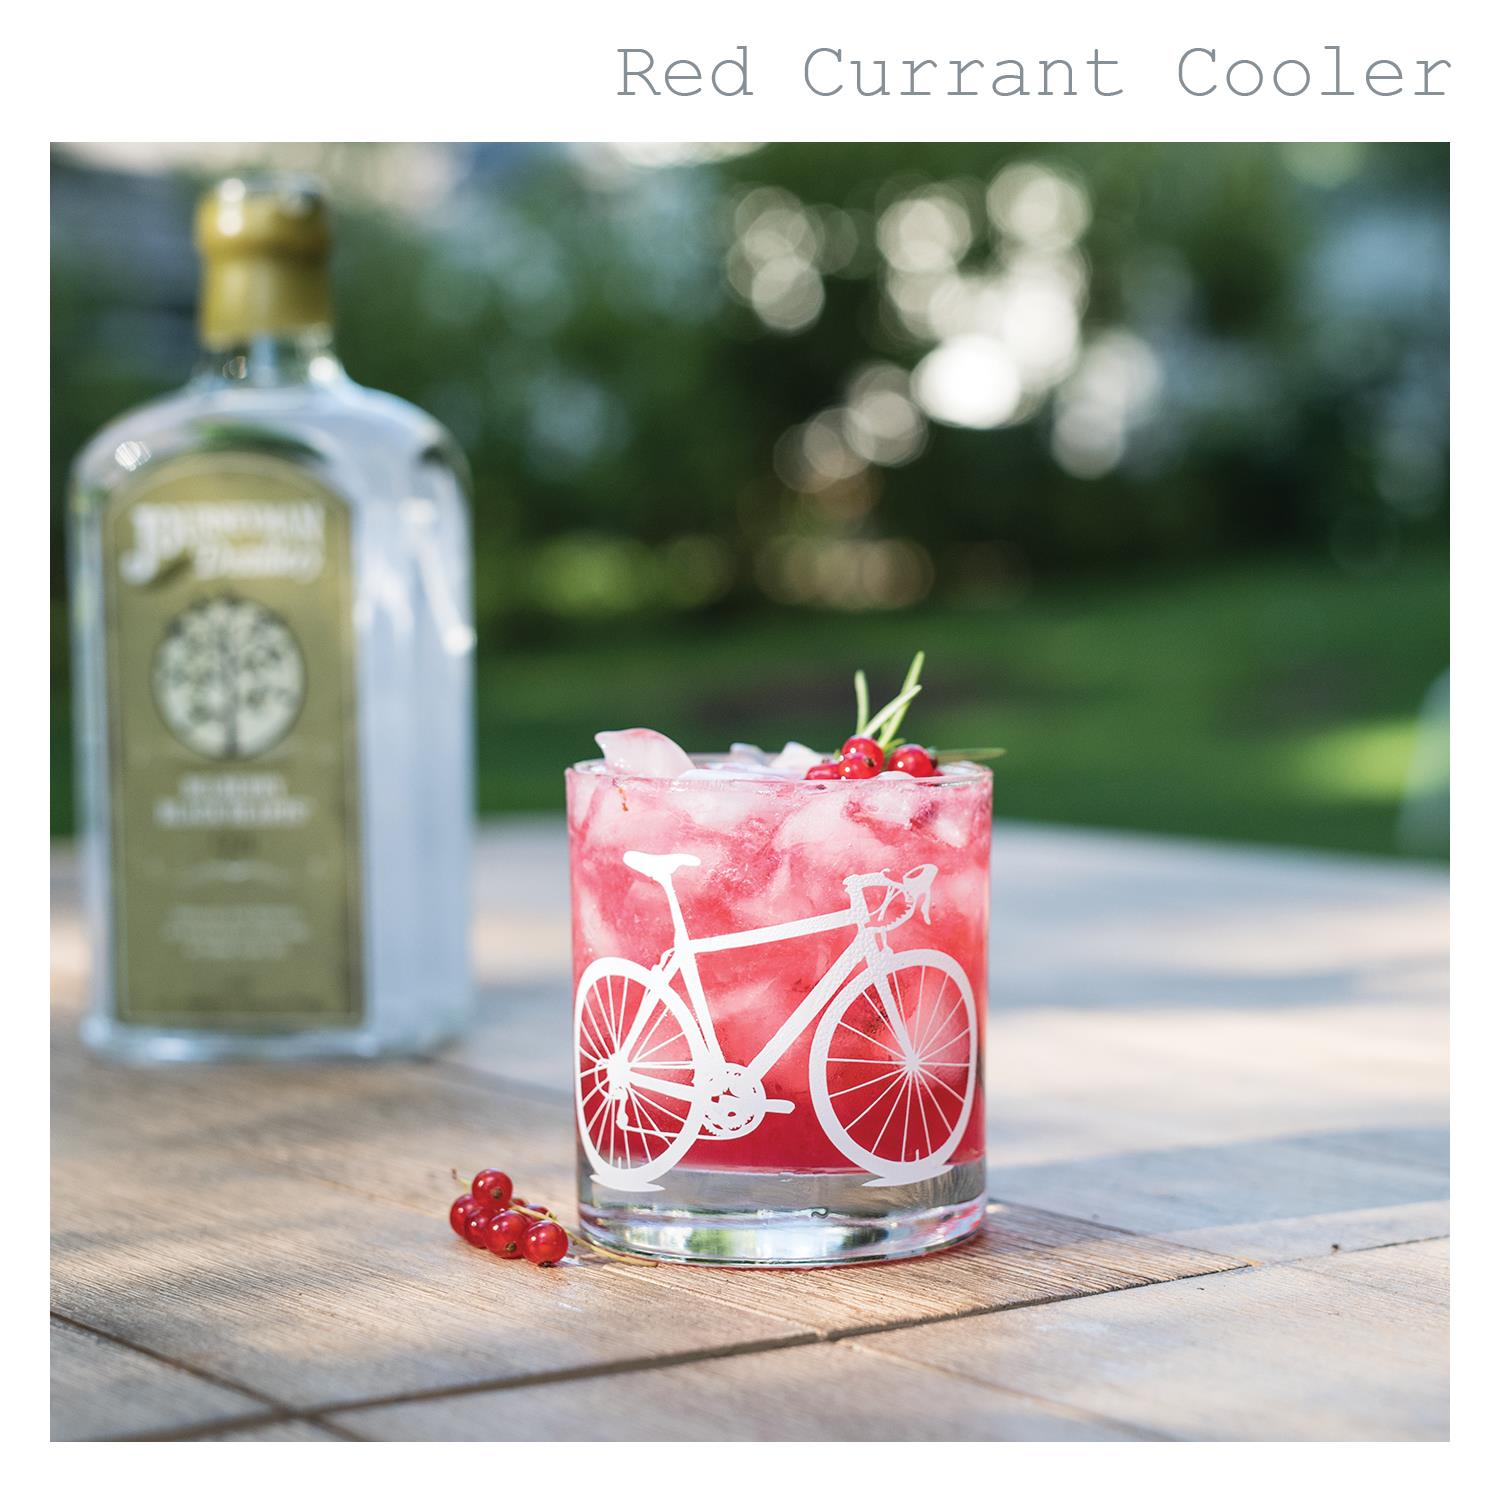 Non alcoholic red currant cooler in white bicycle rocks glass